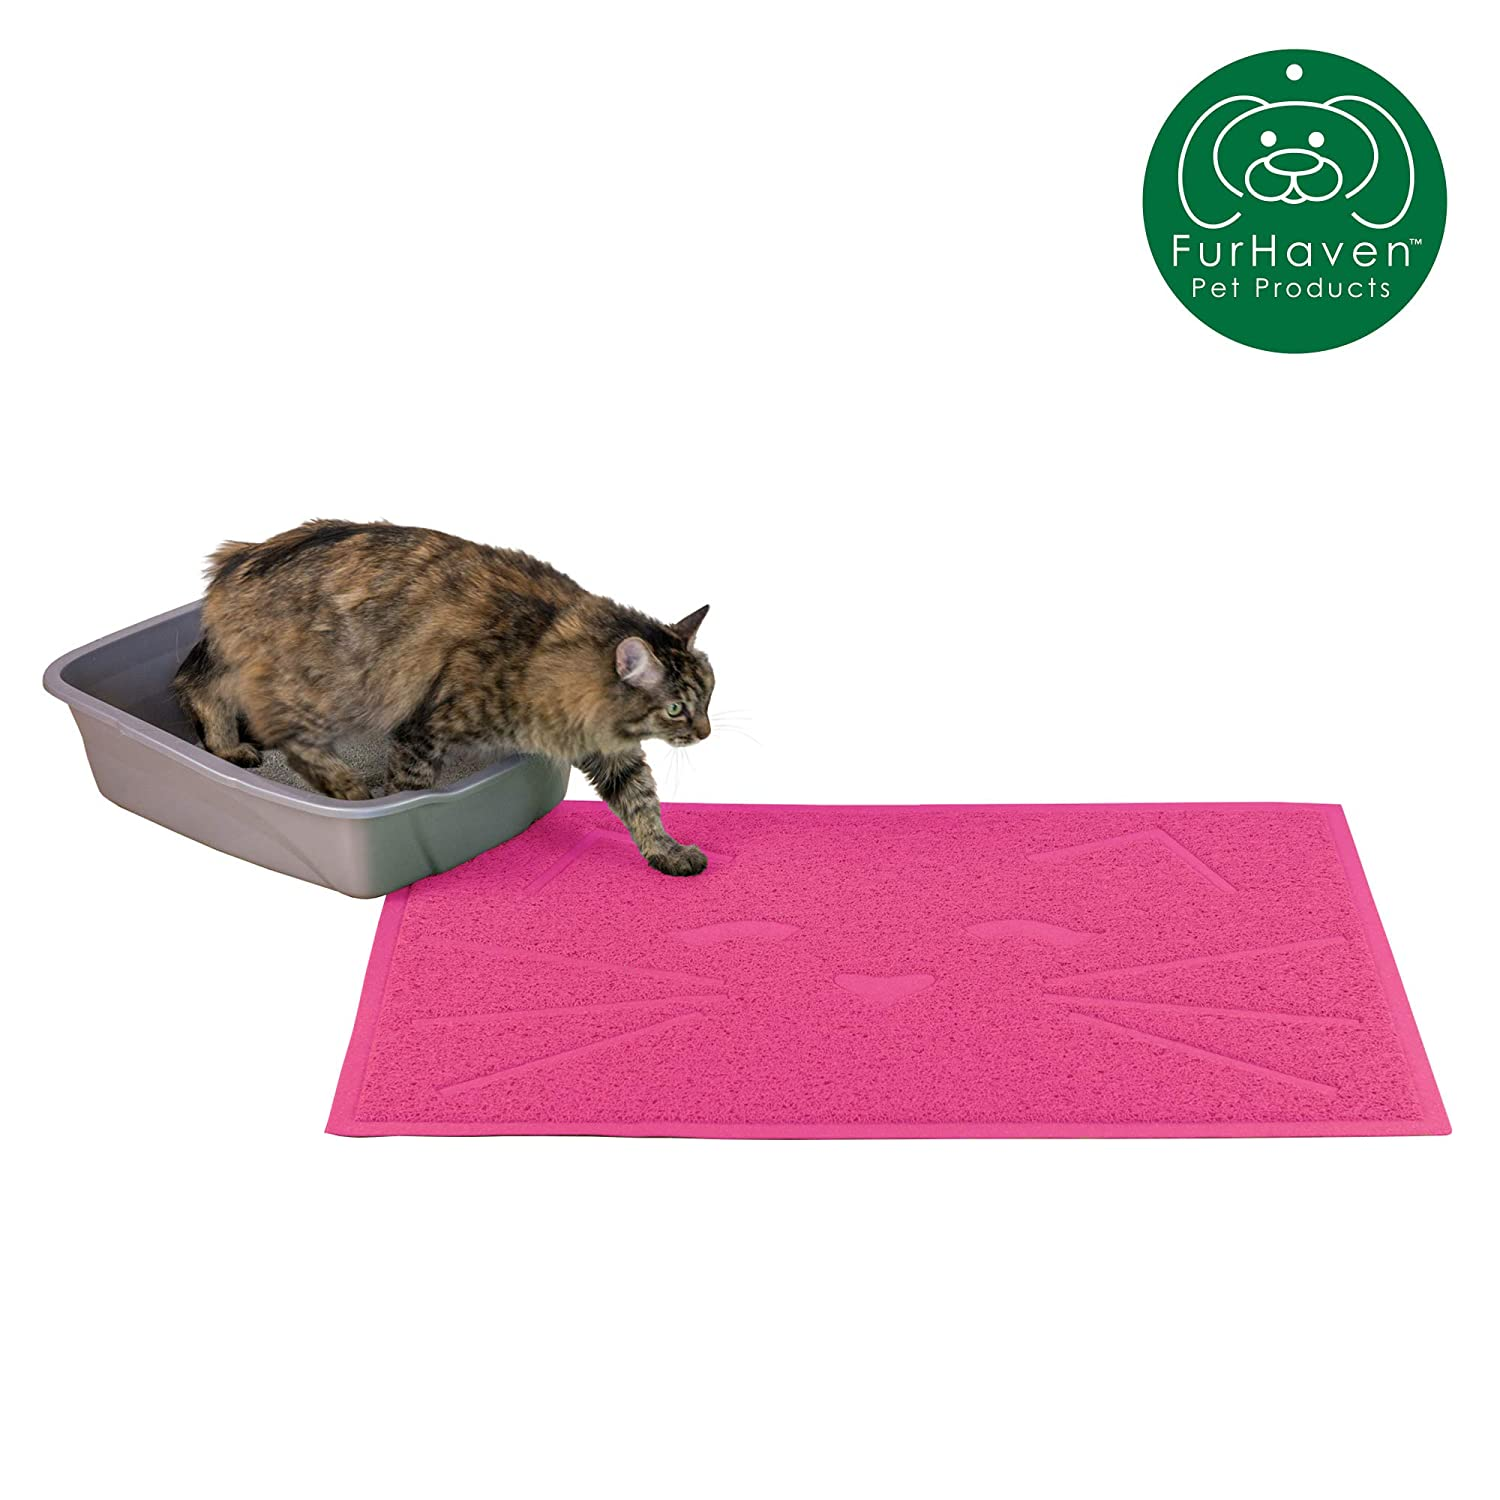 Furhaven Pet Food Mat | Tiger Tough Tidy Paws Litter & Dining Food Mat for Dogs & Cats, Princess Pink, One Size